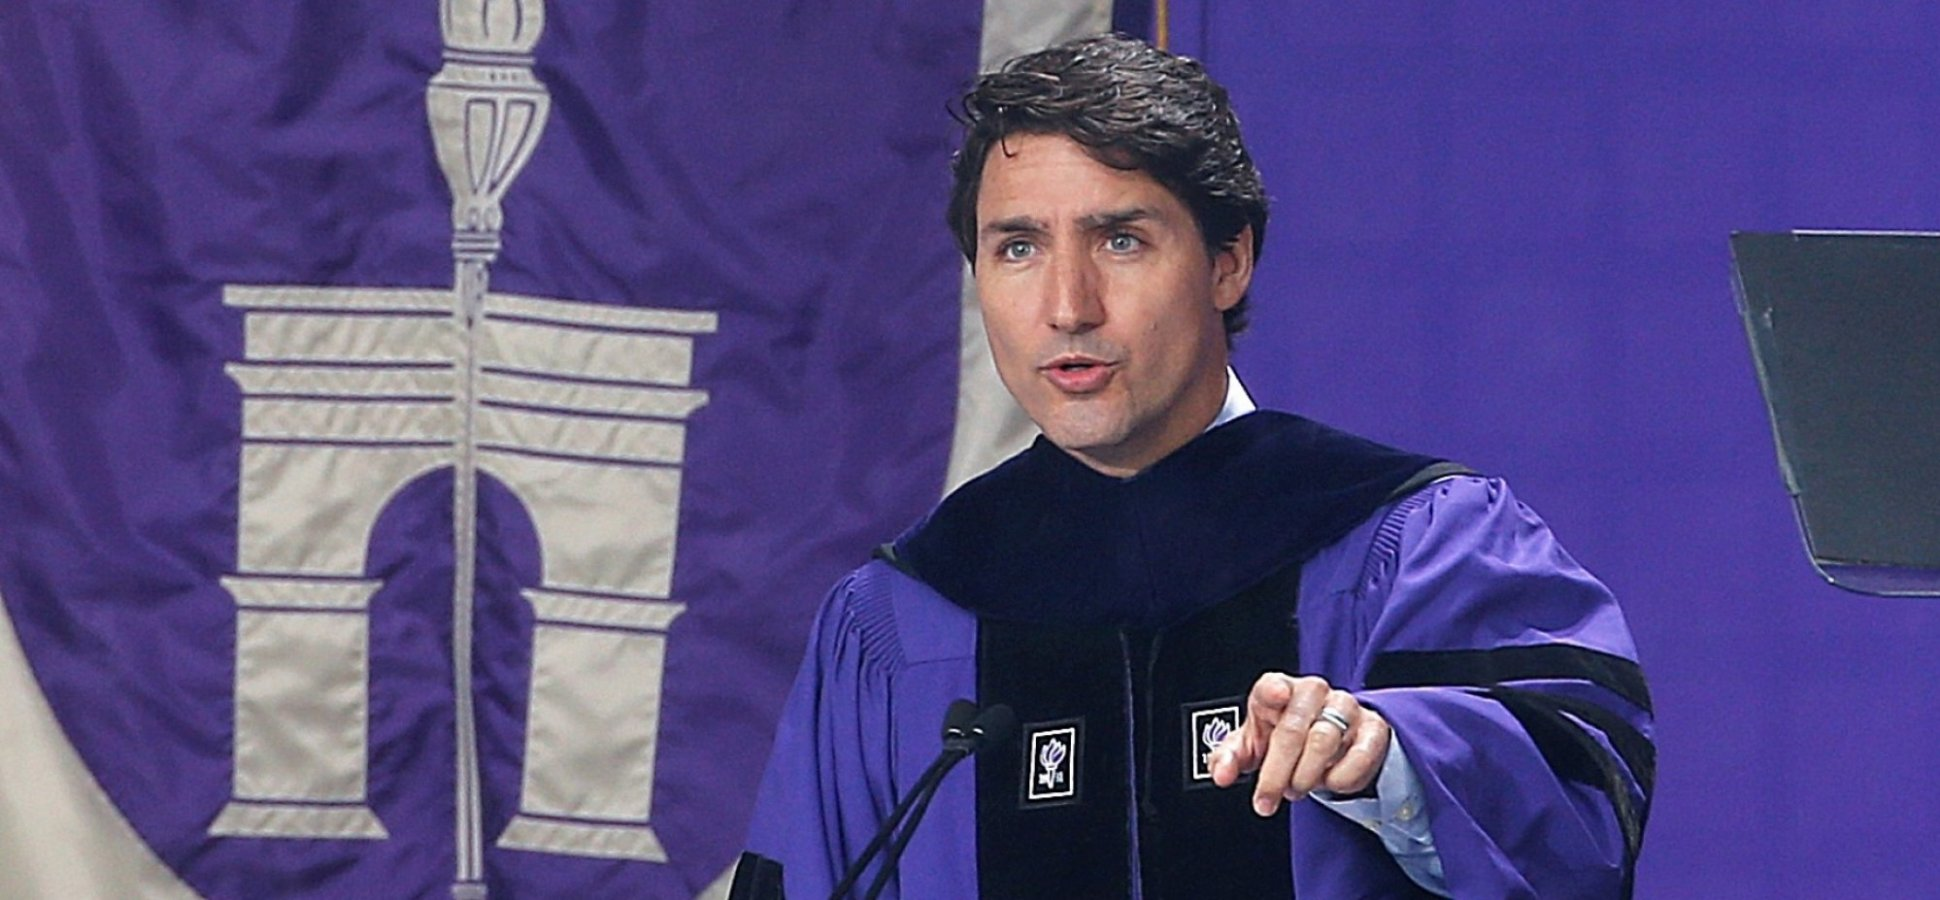 Justin Trudeau's Passionate Commencement Speech Teaches 3 Powerful Lessons on Becoming a Better Leader